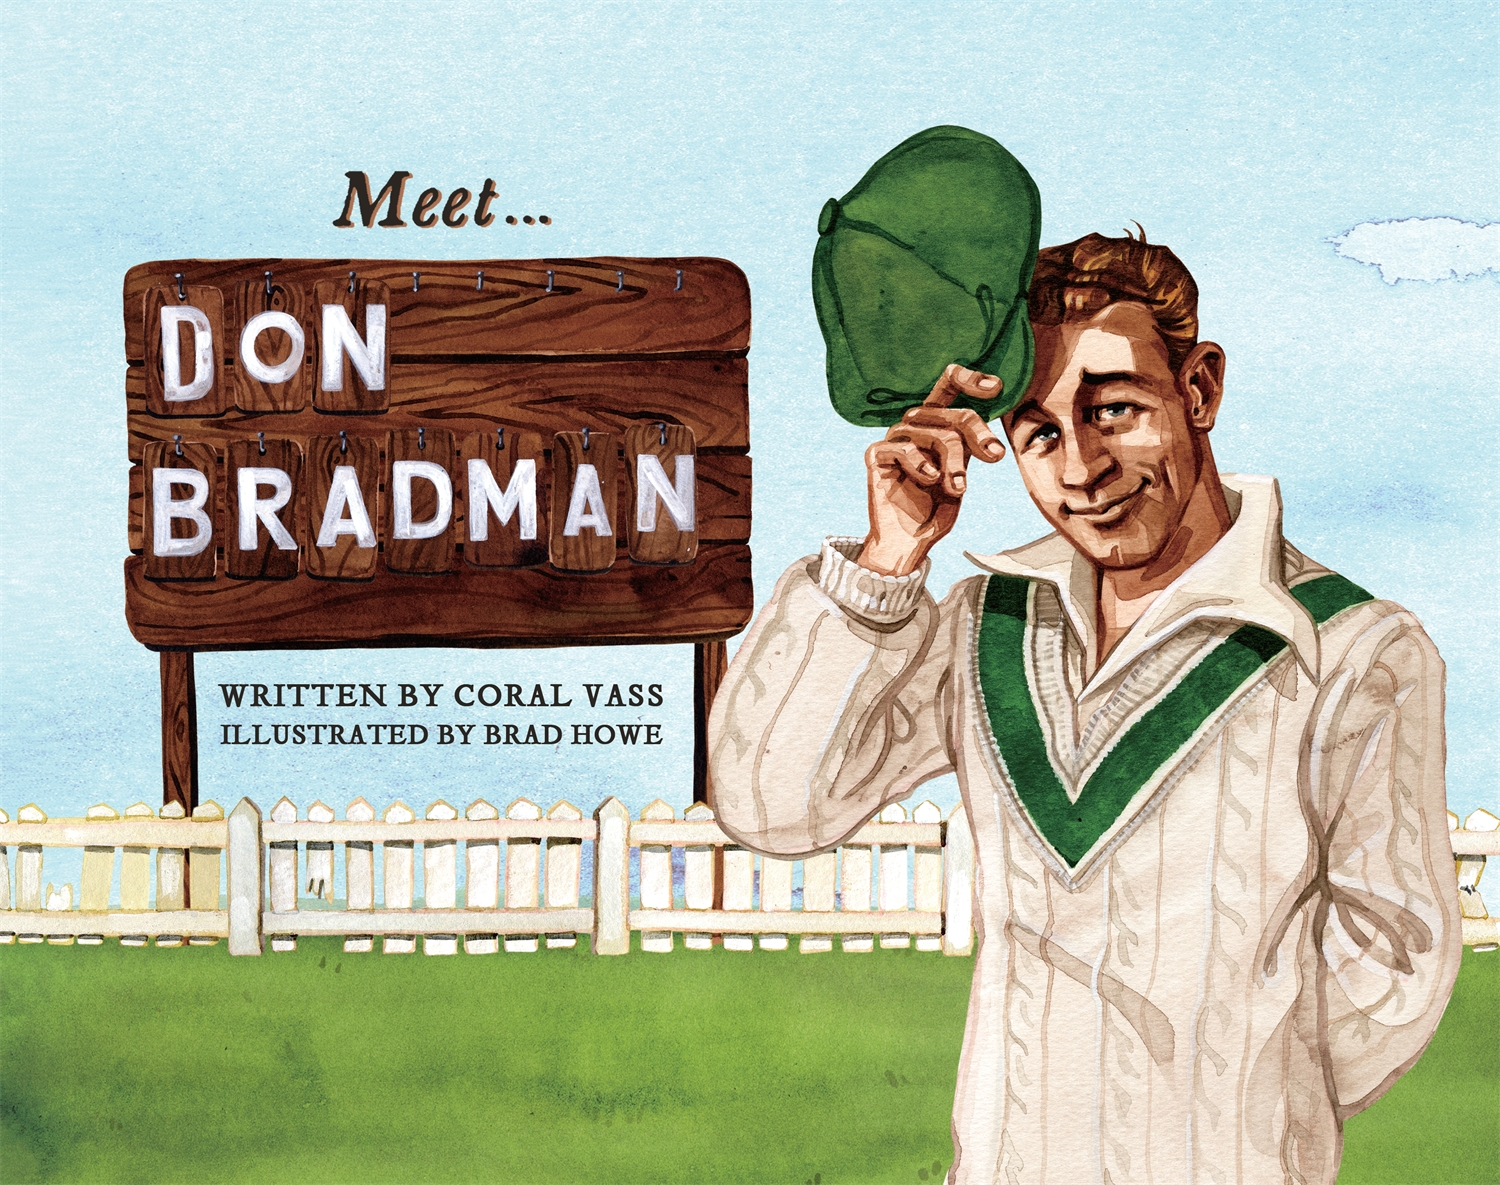 Meet...Don Bradman - By Coral Vass and Brad HoweA picture book series about the extraordinary men and women who have shaped Australia's history, including cricket's greatest ever batsman, Sir Donald Bradman.Don Bradman was Australia's greatest cricketer. This is the story of how he first came to play for Australia, and how his record-breaking feats in the Ashes series became a source of pride and hope during the hard years of the Great Depression.